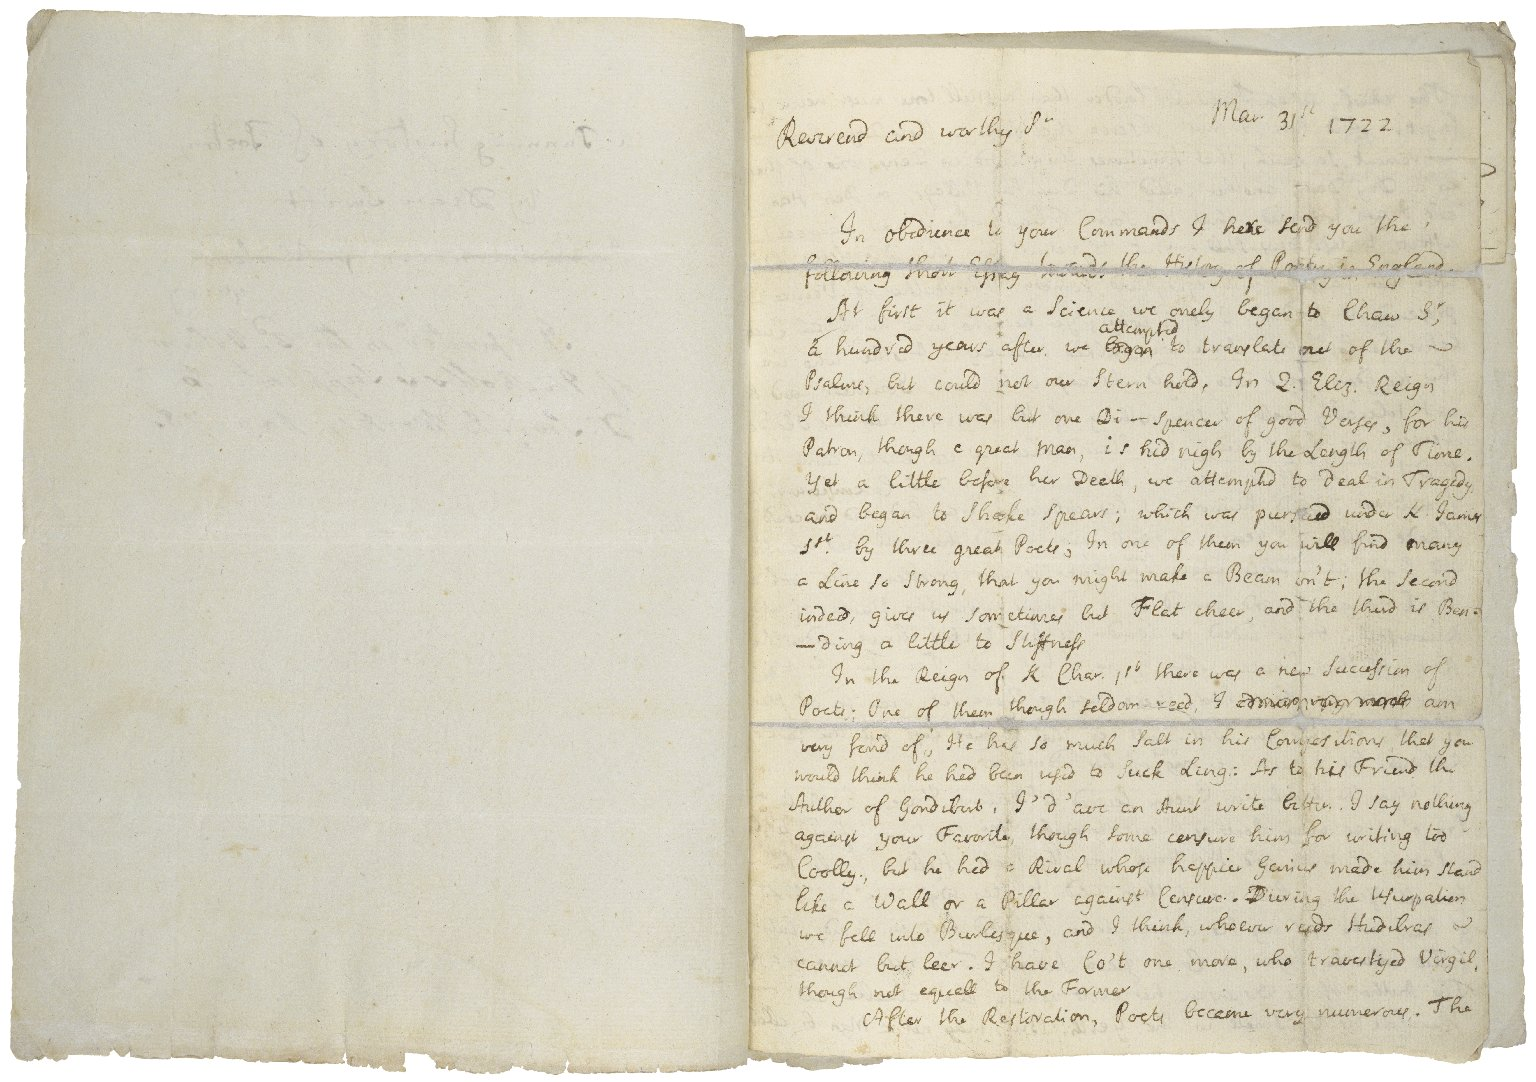 A history of poetry ... [manuscript], 1722 March 31.